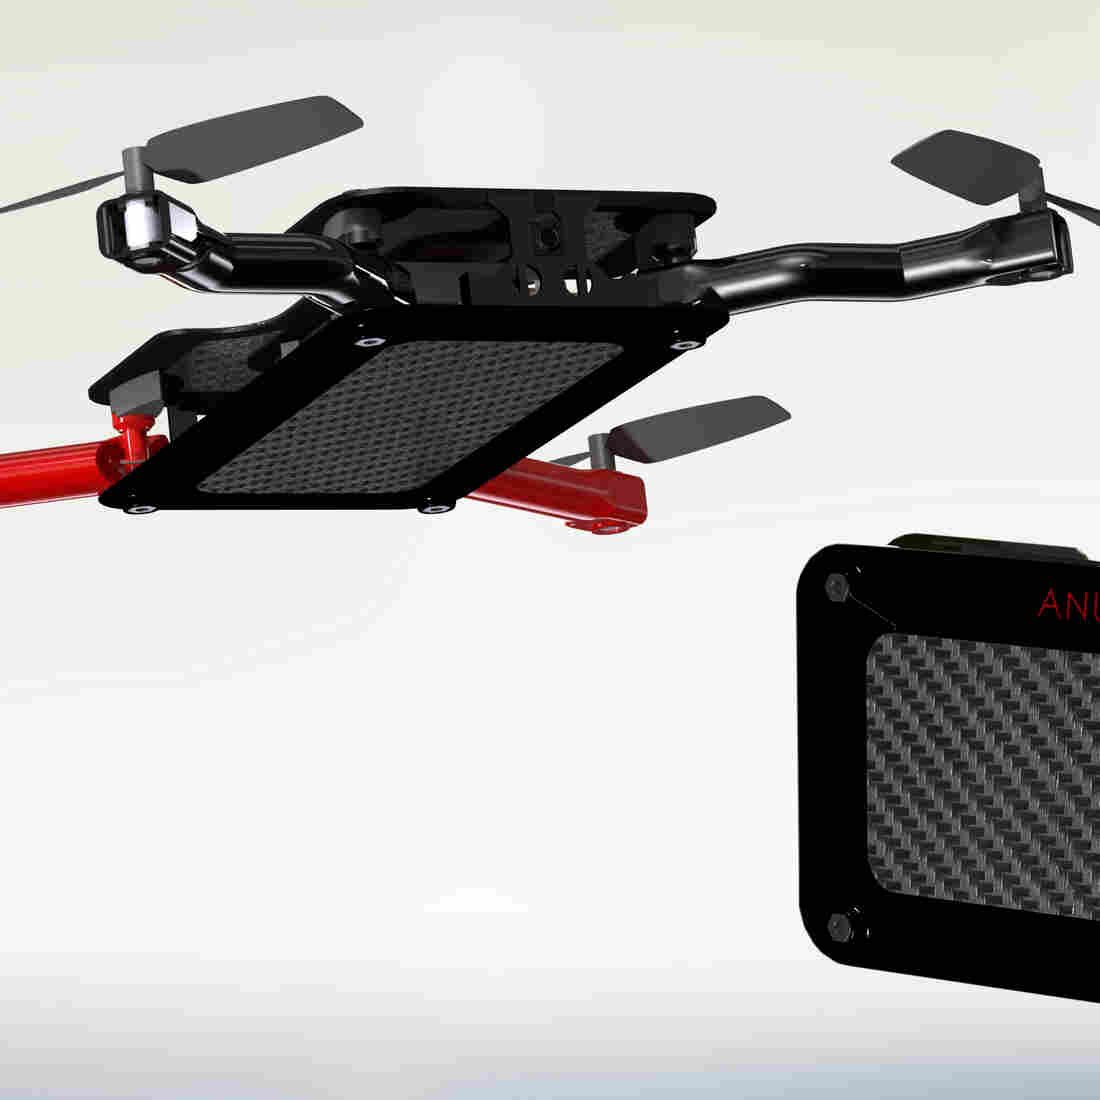 Weekly Innovation: This Drone Fits In Your Pocket